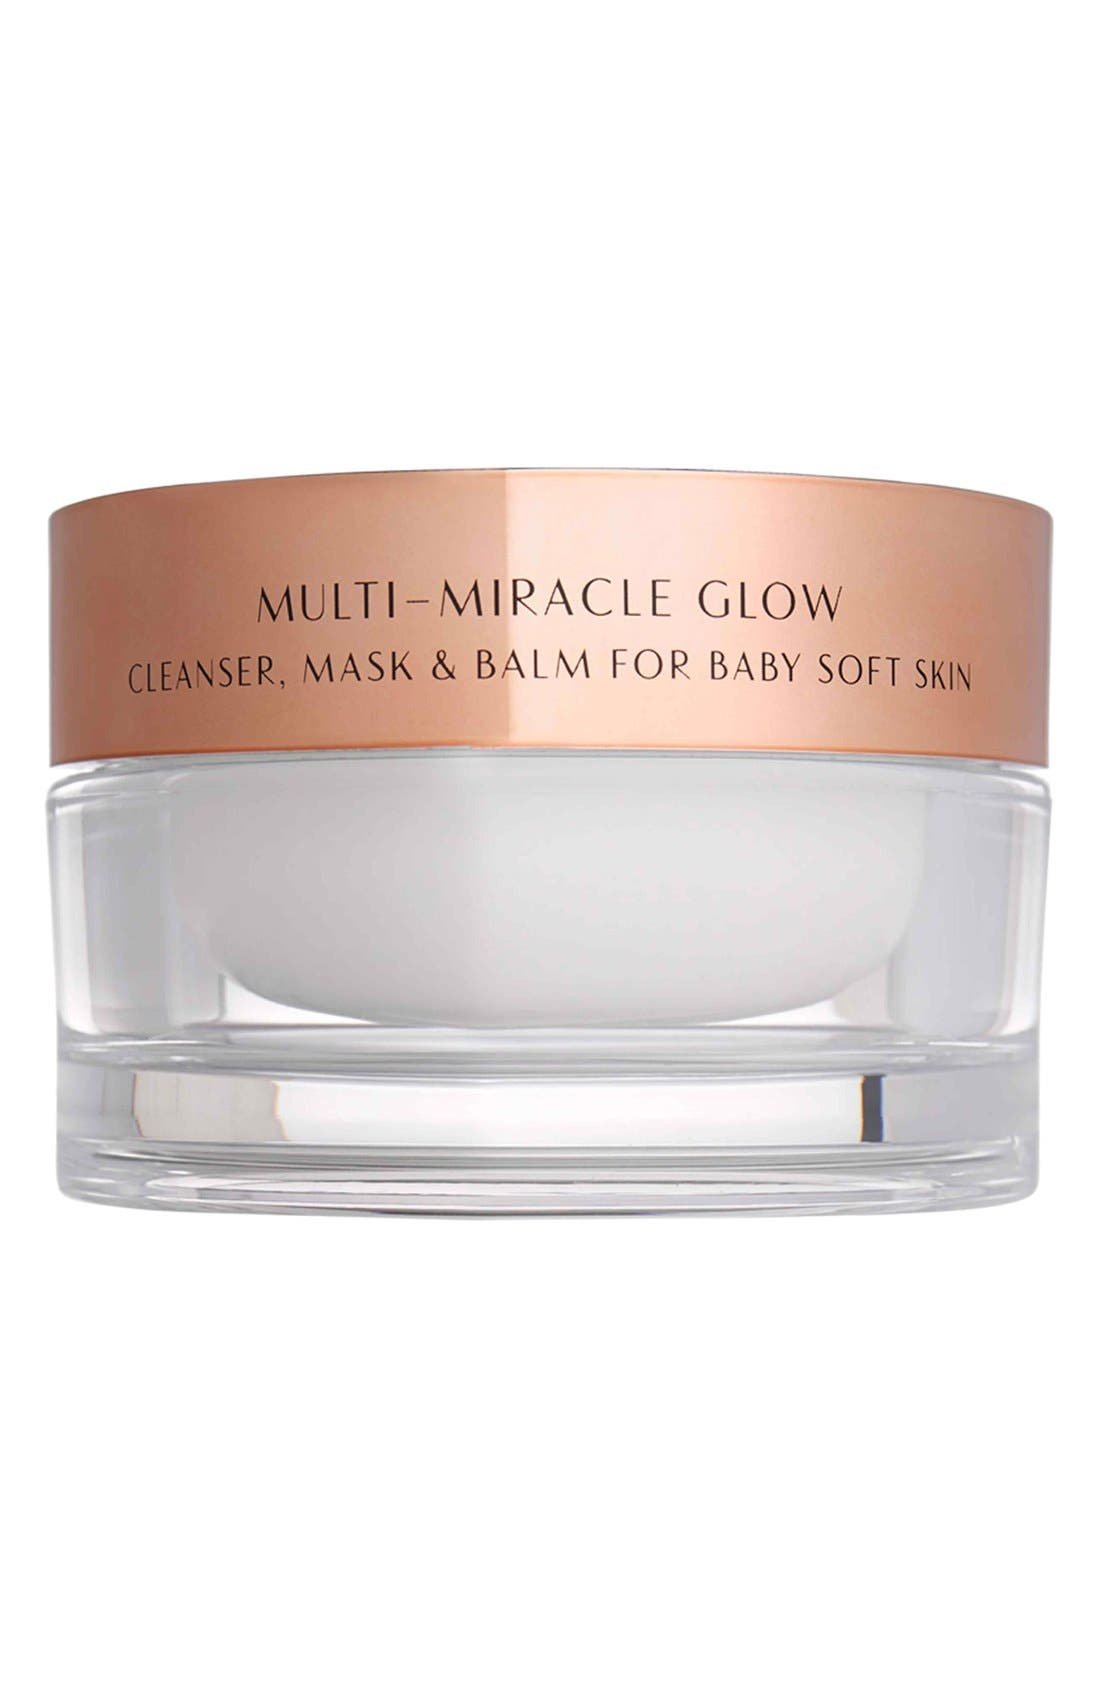 Charlotte Tilbury 'Multi-Miracle Glow' Cleanser, Mask & Balm for Baby Soft Skin